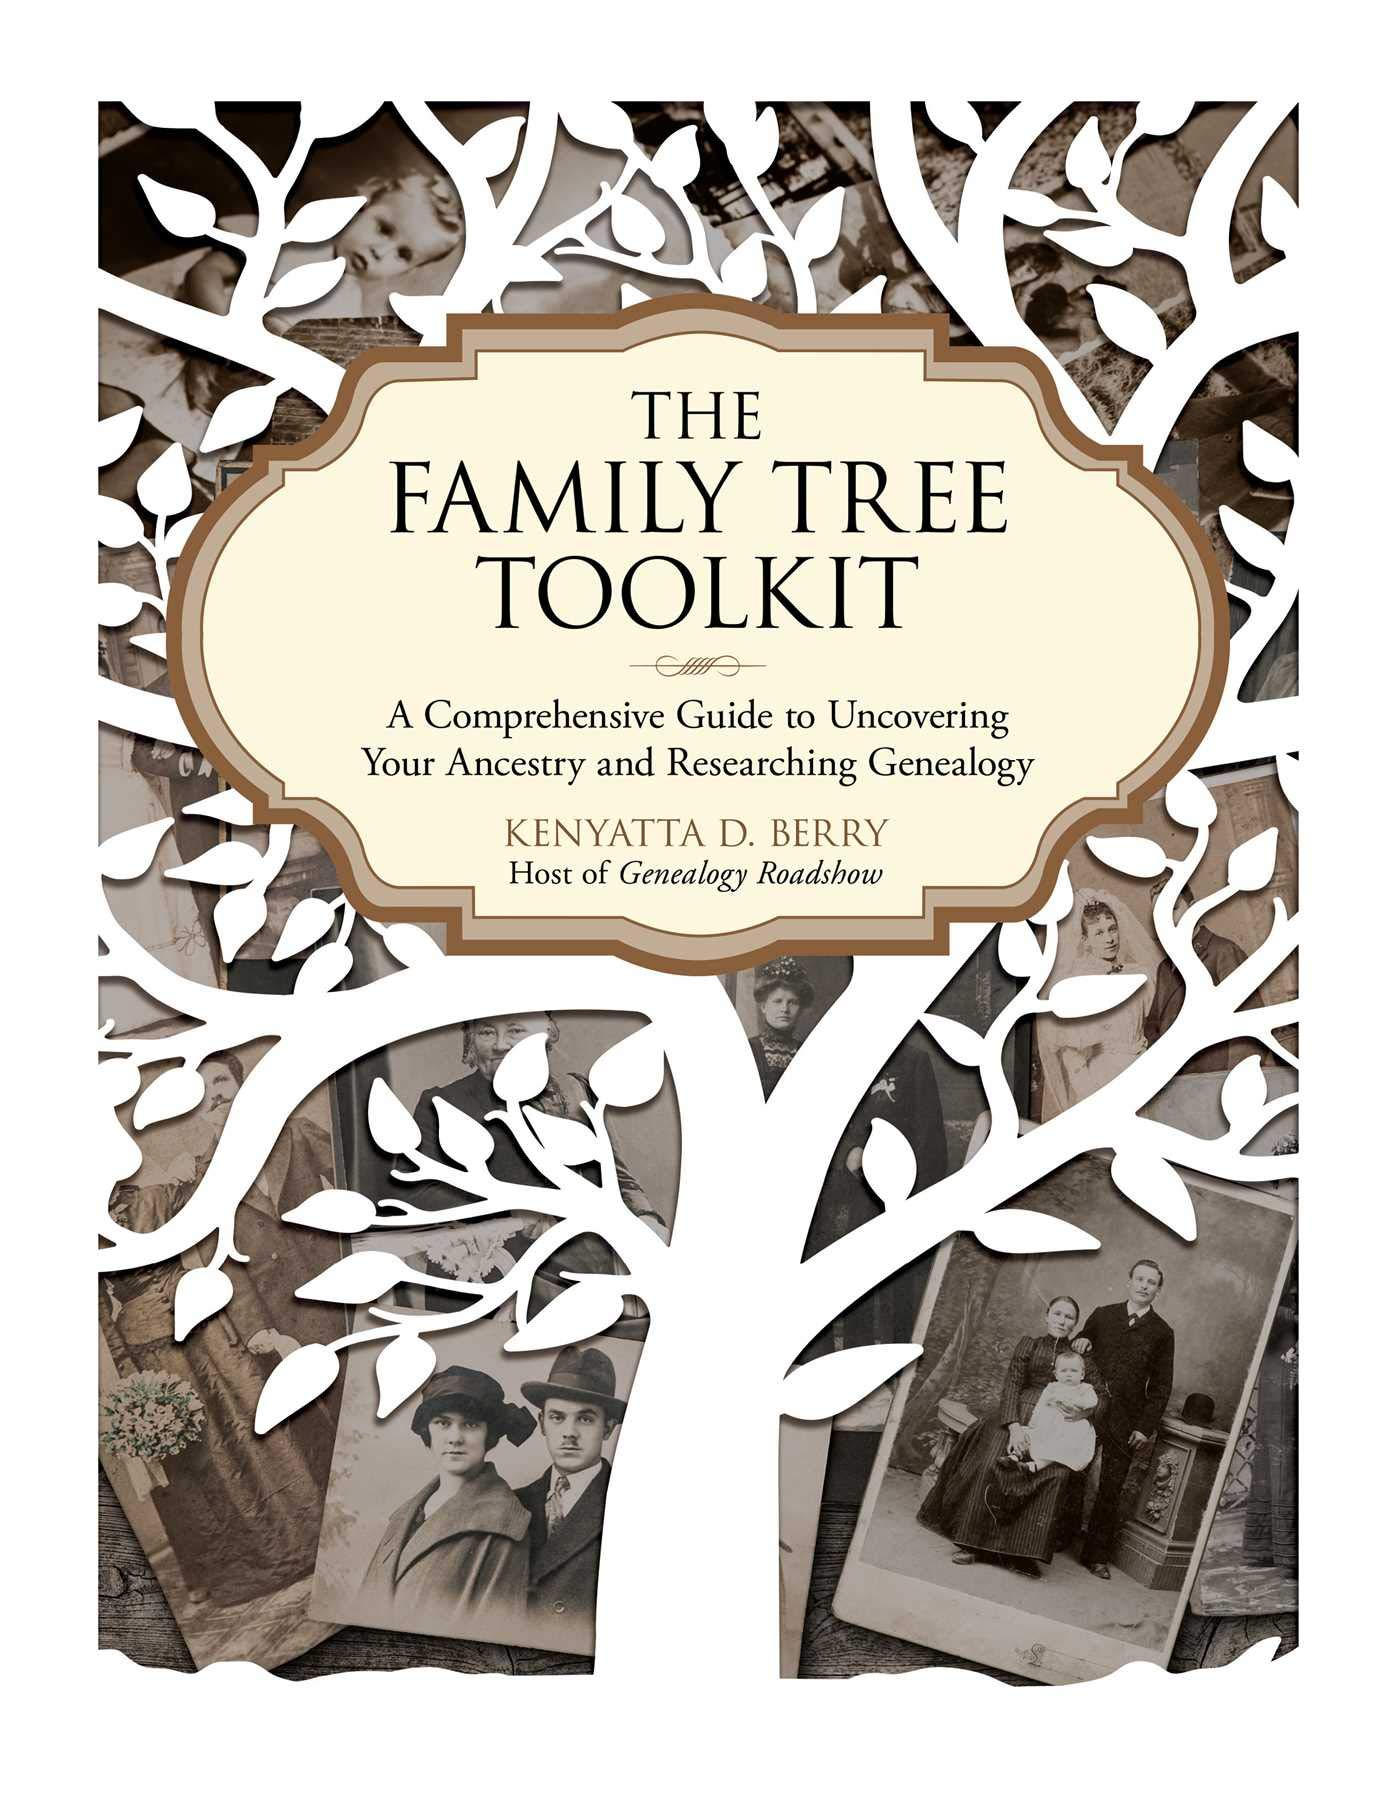 The Family Tree Toolkit: A Comprehensive Guide to Uncovering Your Ancestry  and Researching Genealogy Paperback – November 6, 2018